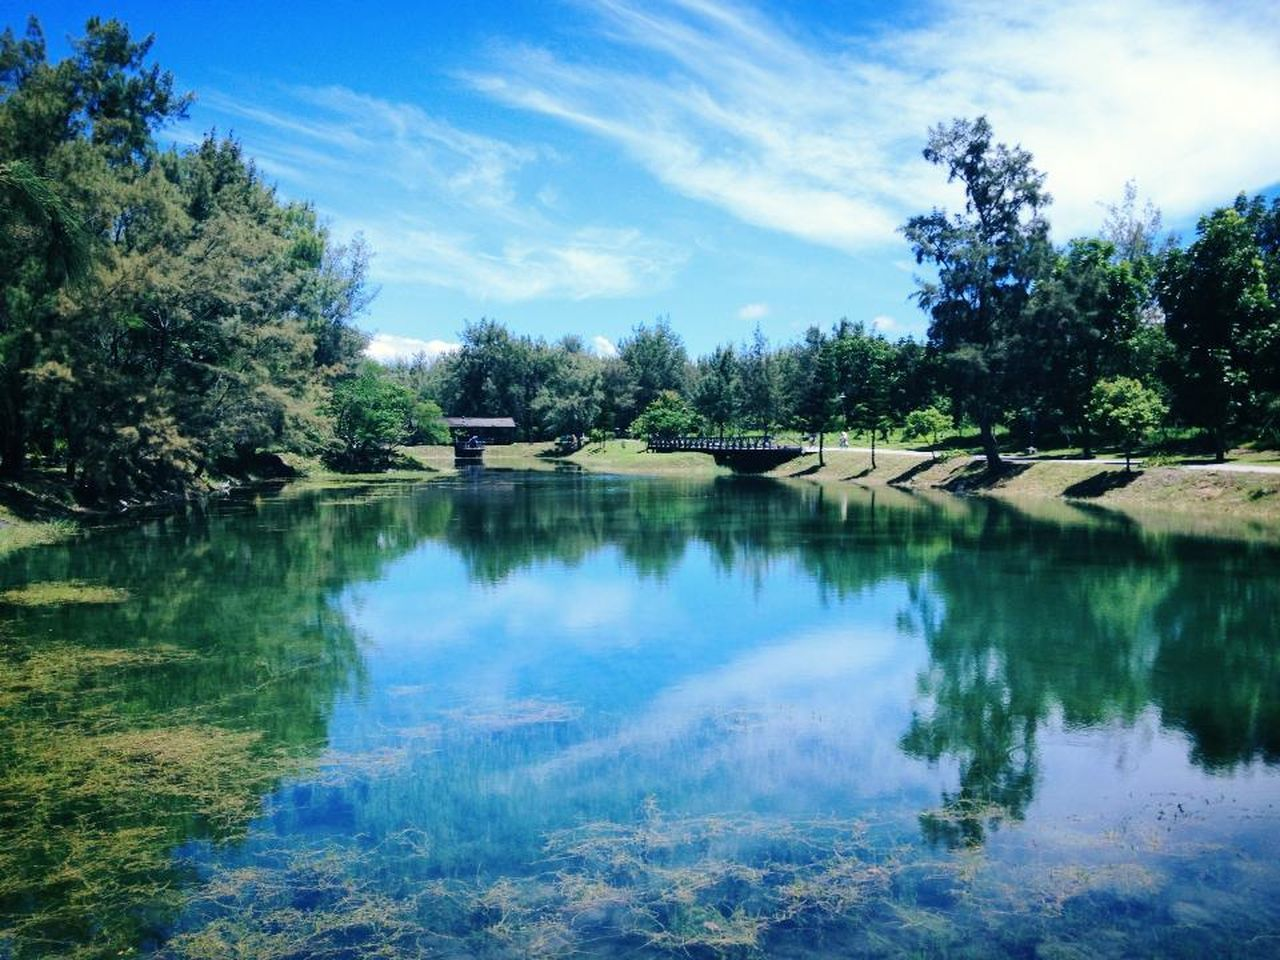 lake Beauty In Nature Cloud - Sky Day Green Color Growth Idyllic Lake Landscape Nature No People Outdoors Reflection Scenics Sky Tranquil Scene Tranquility Tree Water